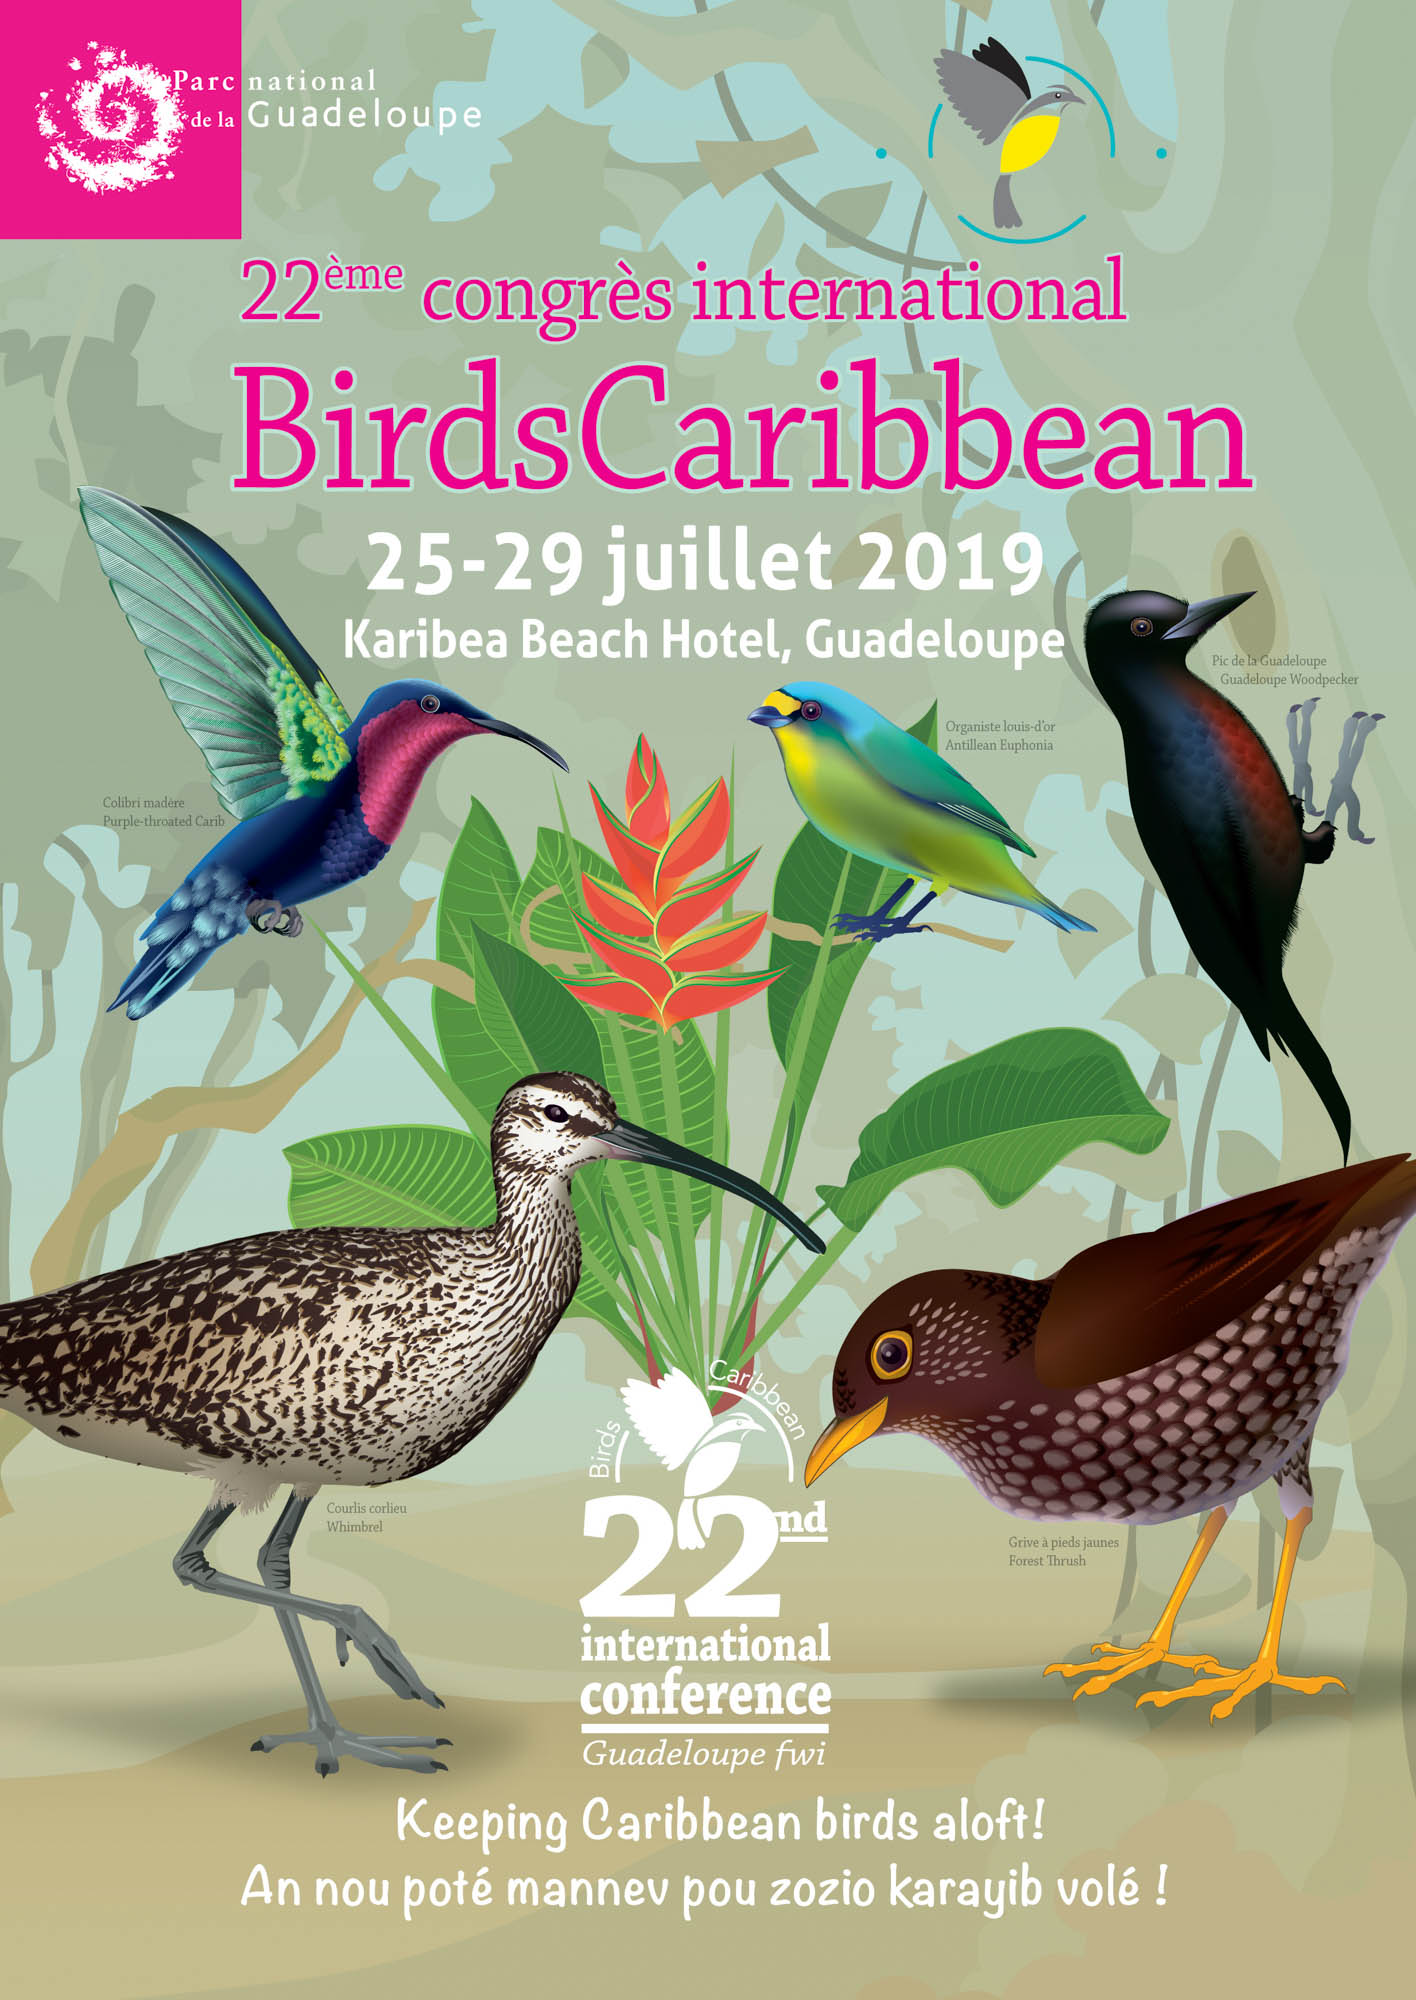 birds Guadeloupe Conference Poster 2